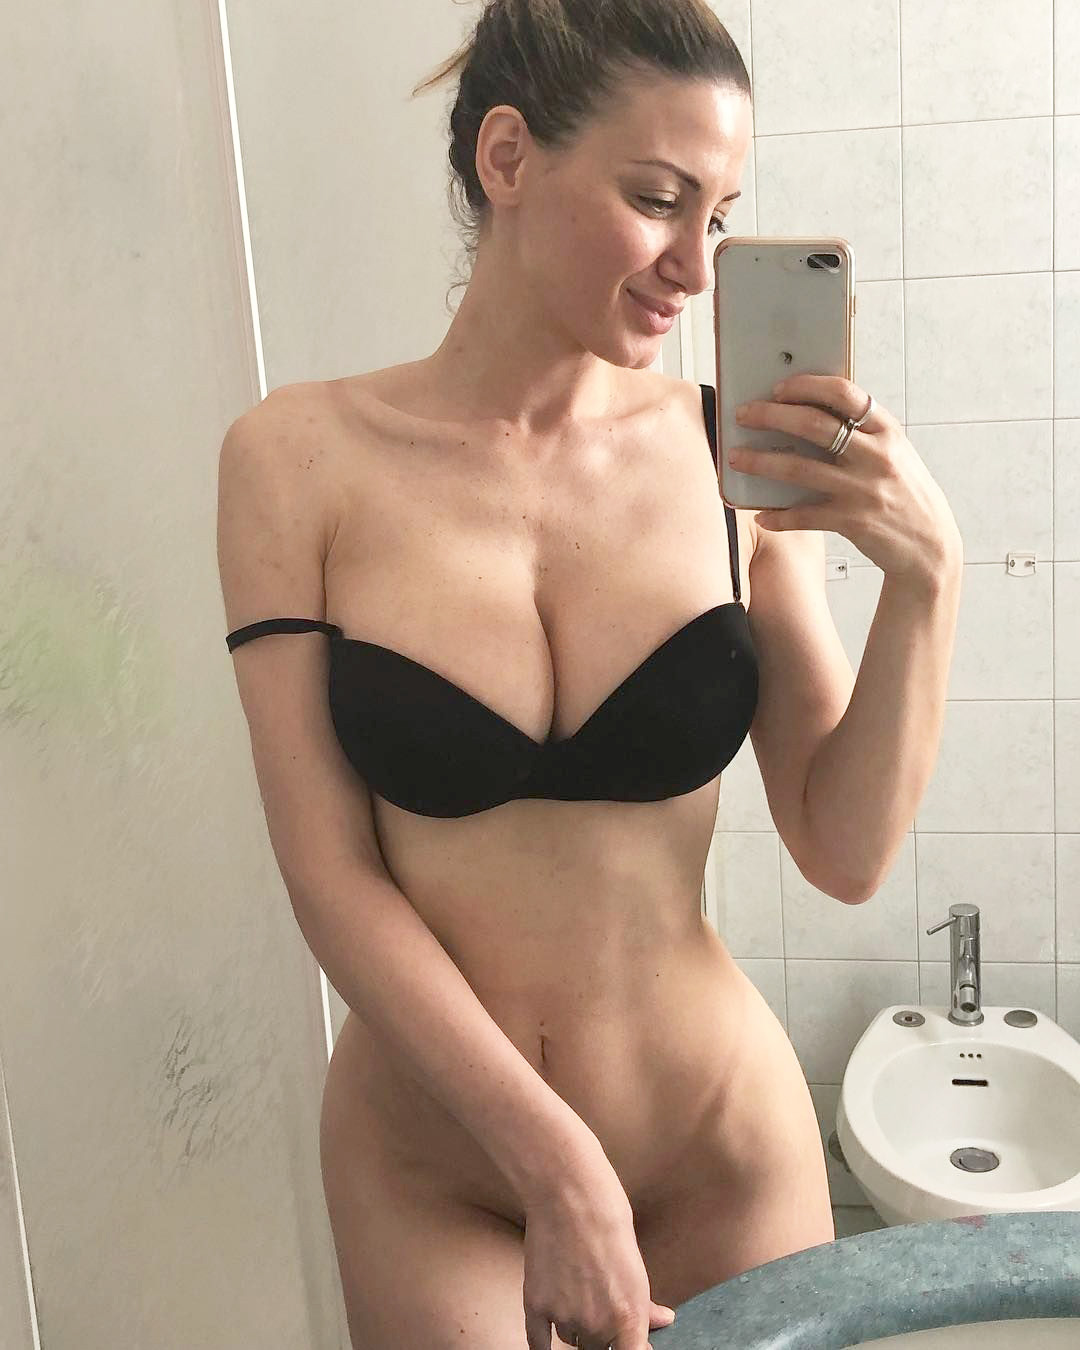 Model Rosy Maggiulli nude selfies and stripping photos leaked The Fappening 2018